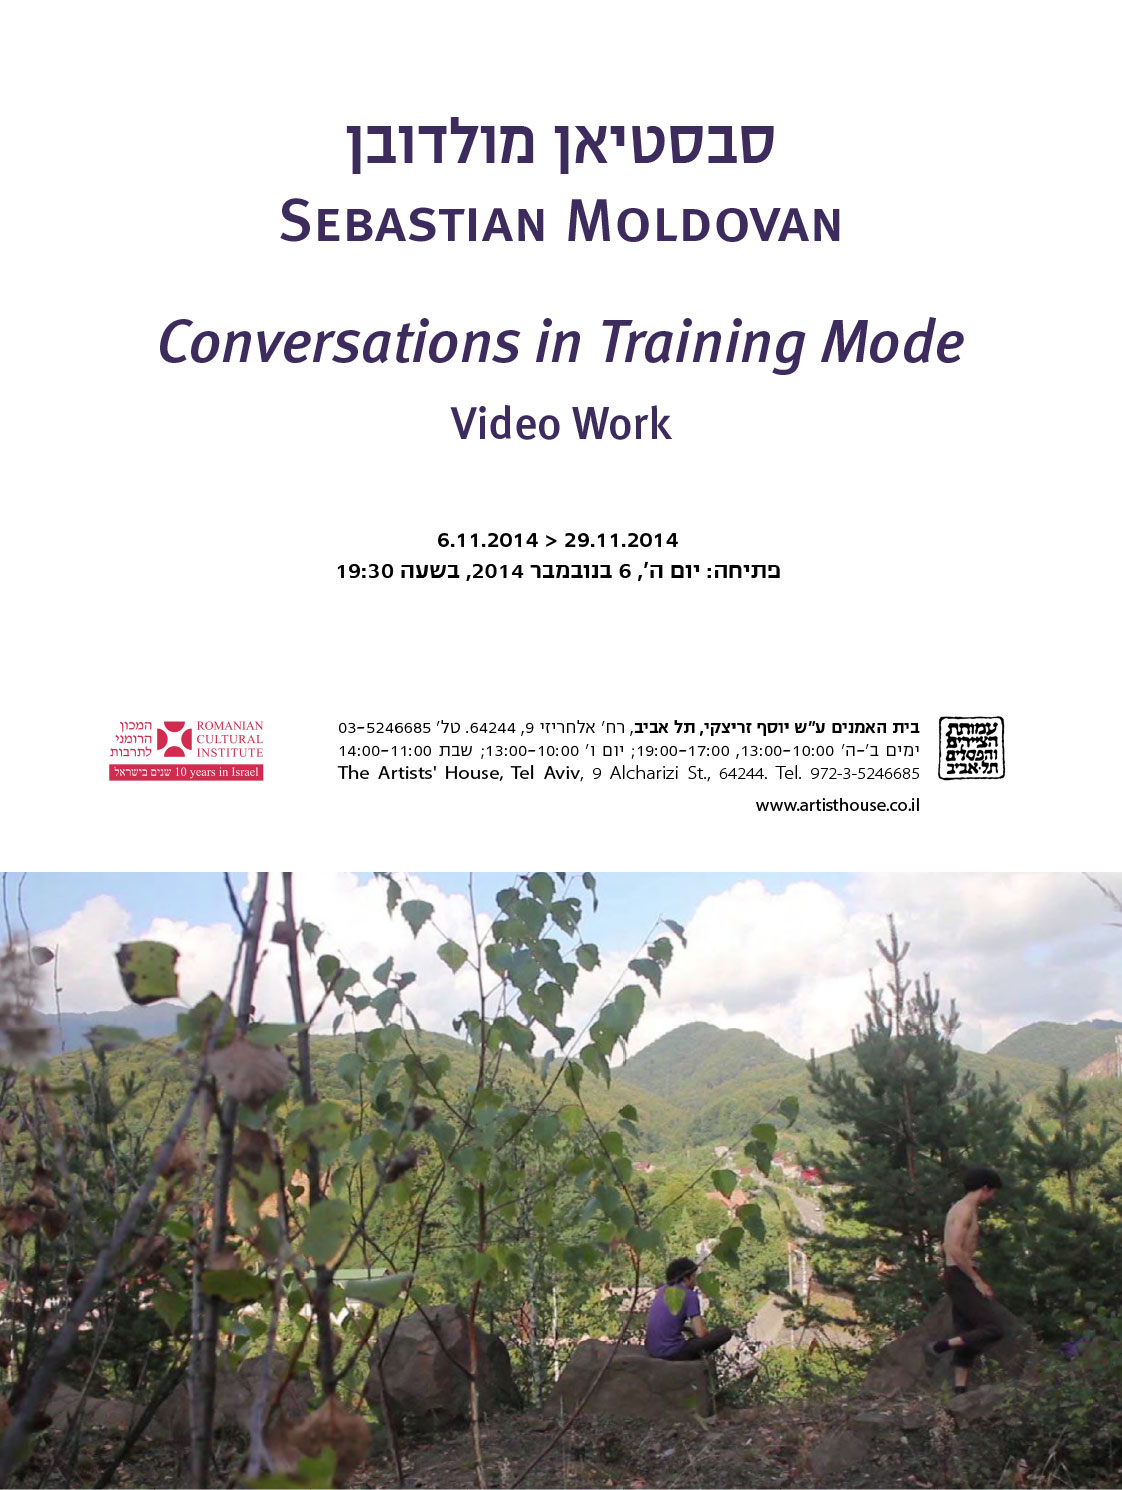 """Conversations in Training Mode""  Lucrare video de Sebastian Moldovan, prezentată la Casa Artiștilor din Tel Aviv"